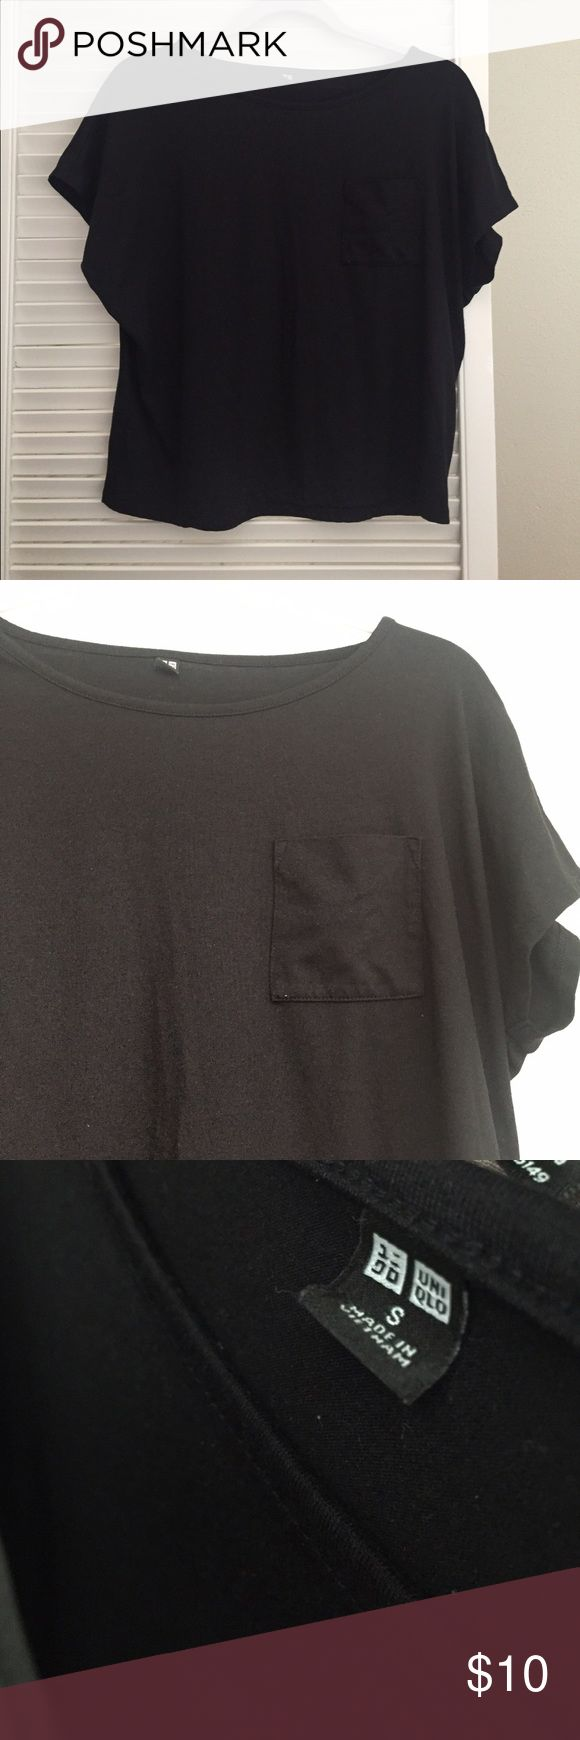 Uniqlo Boxy Top Comfortable and great quality boxy top from Uniqlo. Front pocket detail. Great to wear casually. Loose fit. Uniqlo Tops Tees - Short Sleeve